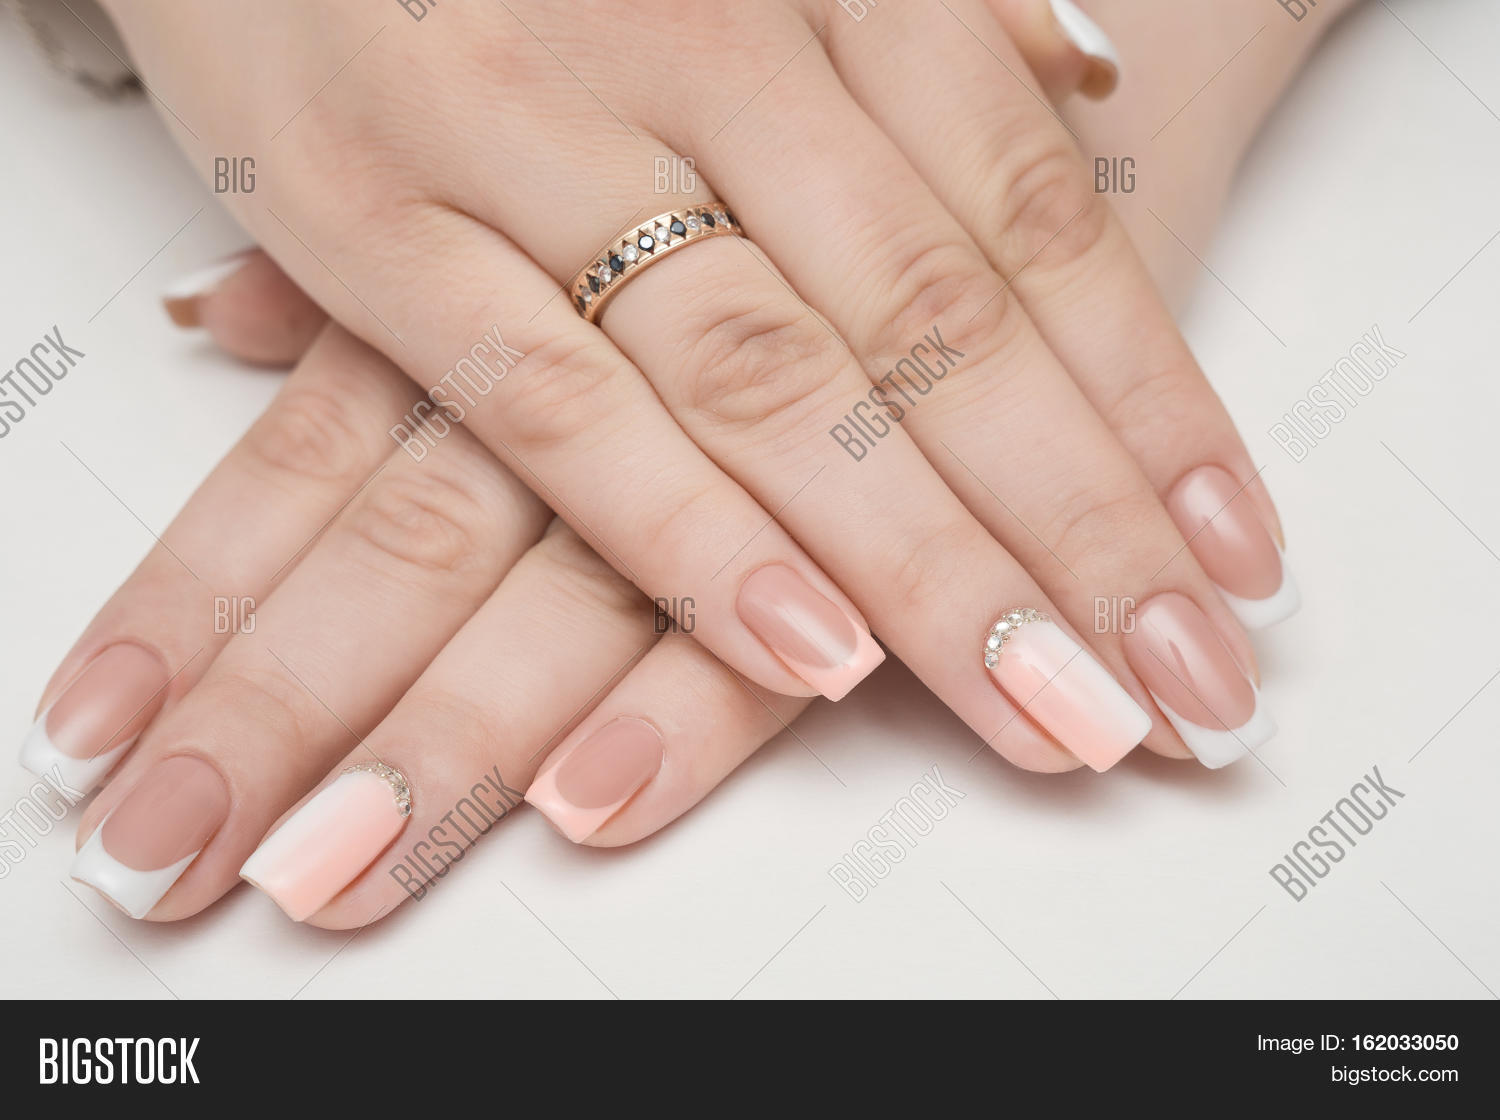 Manicure beauty treatment photo image photo bigstock manicure beauty treatment photo of nice manicured woman fingernails very nice feminine nail art with prinsesfo Image collections